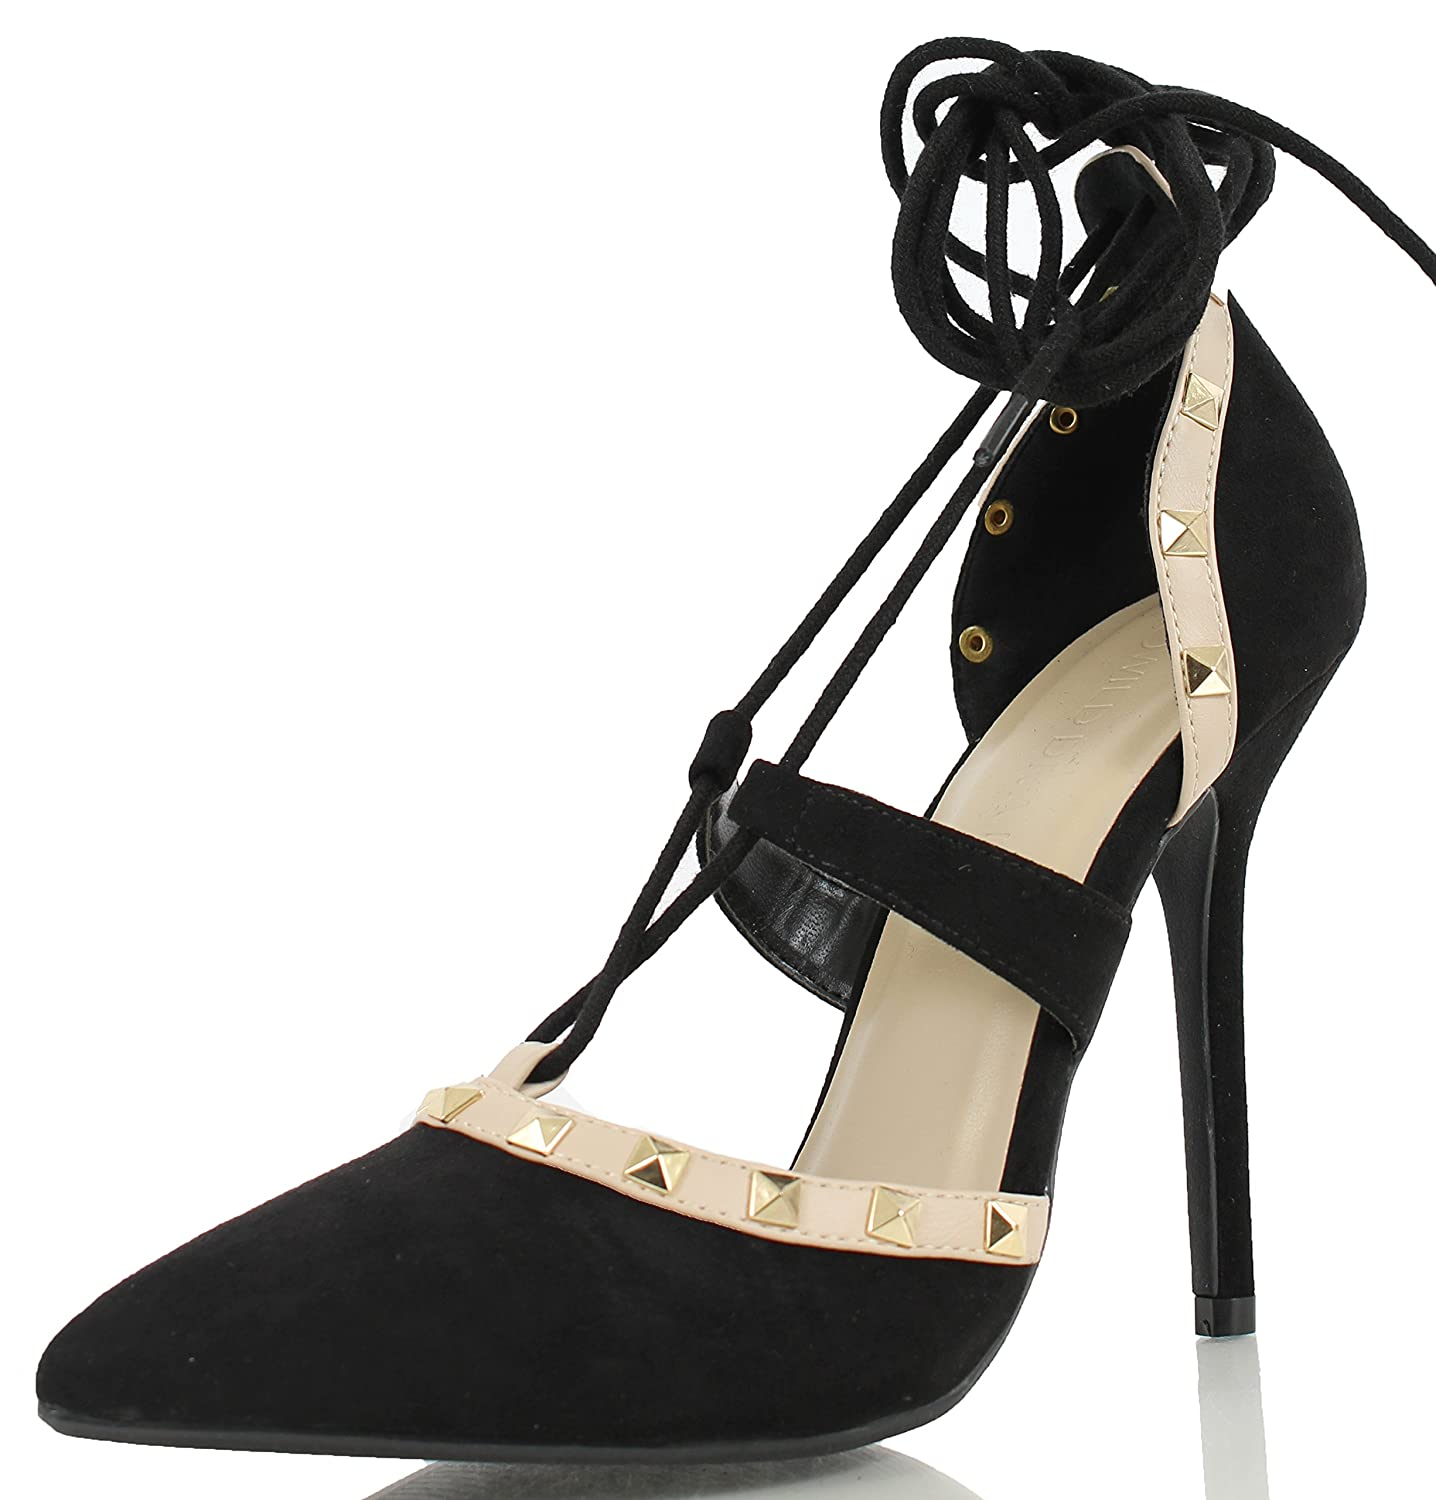 a148643072 Amazon.com   Wild Diva Women's Adora 126 Pointy Toe Lace up Ankle Tie  Studded High Heel   Pumps